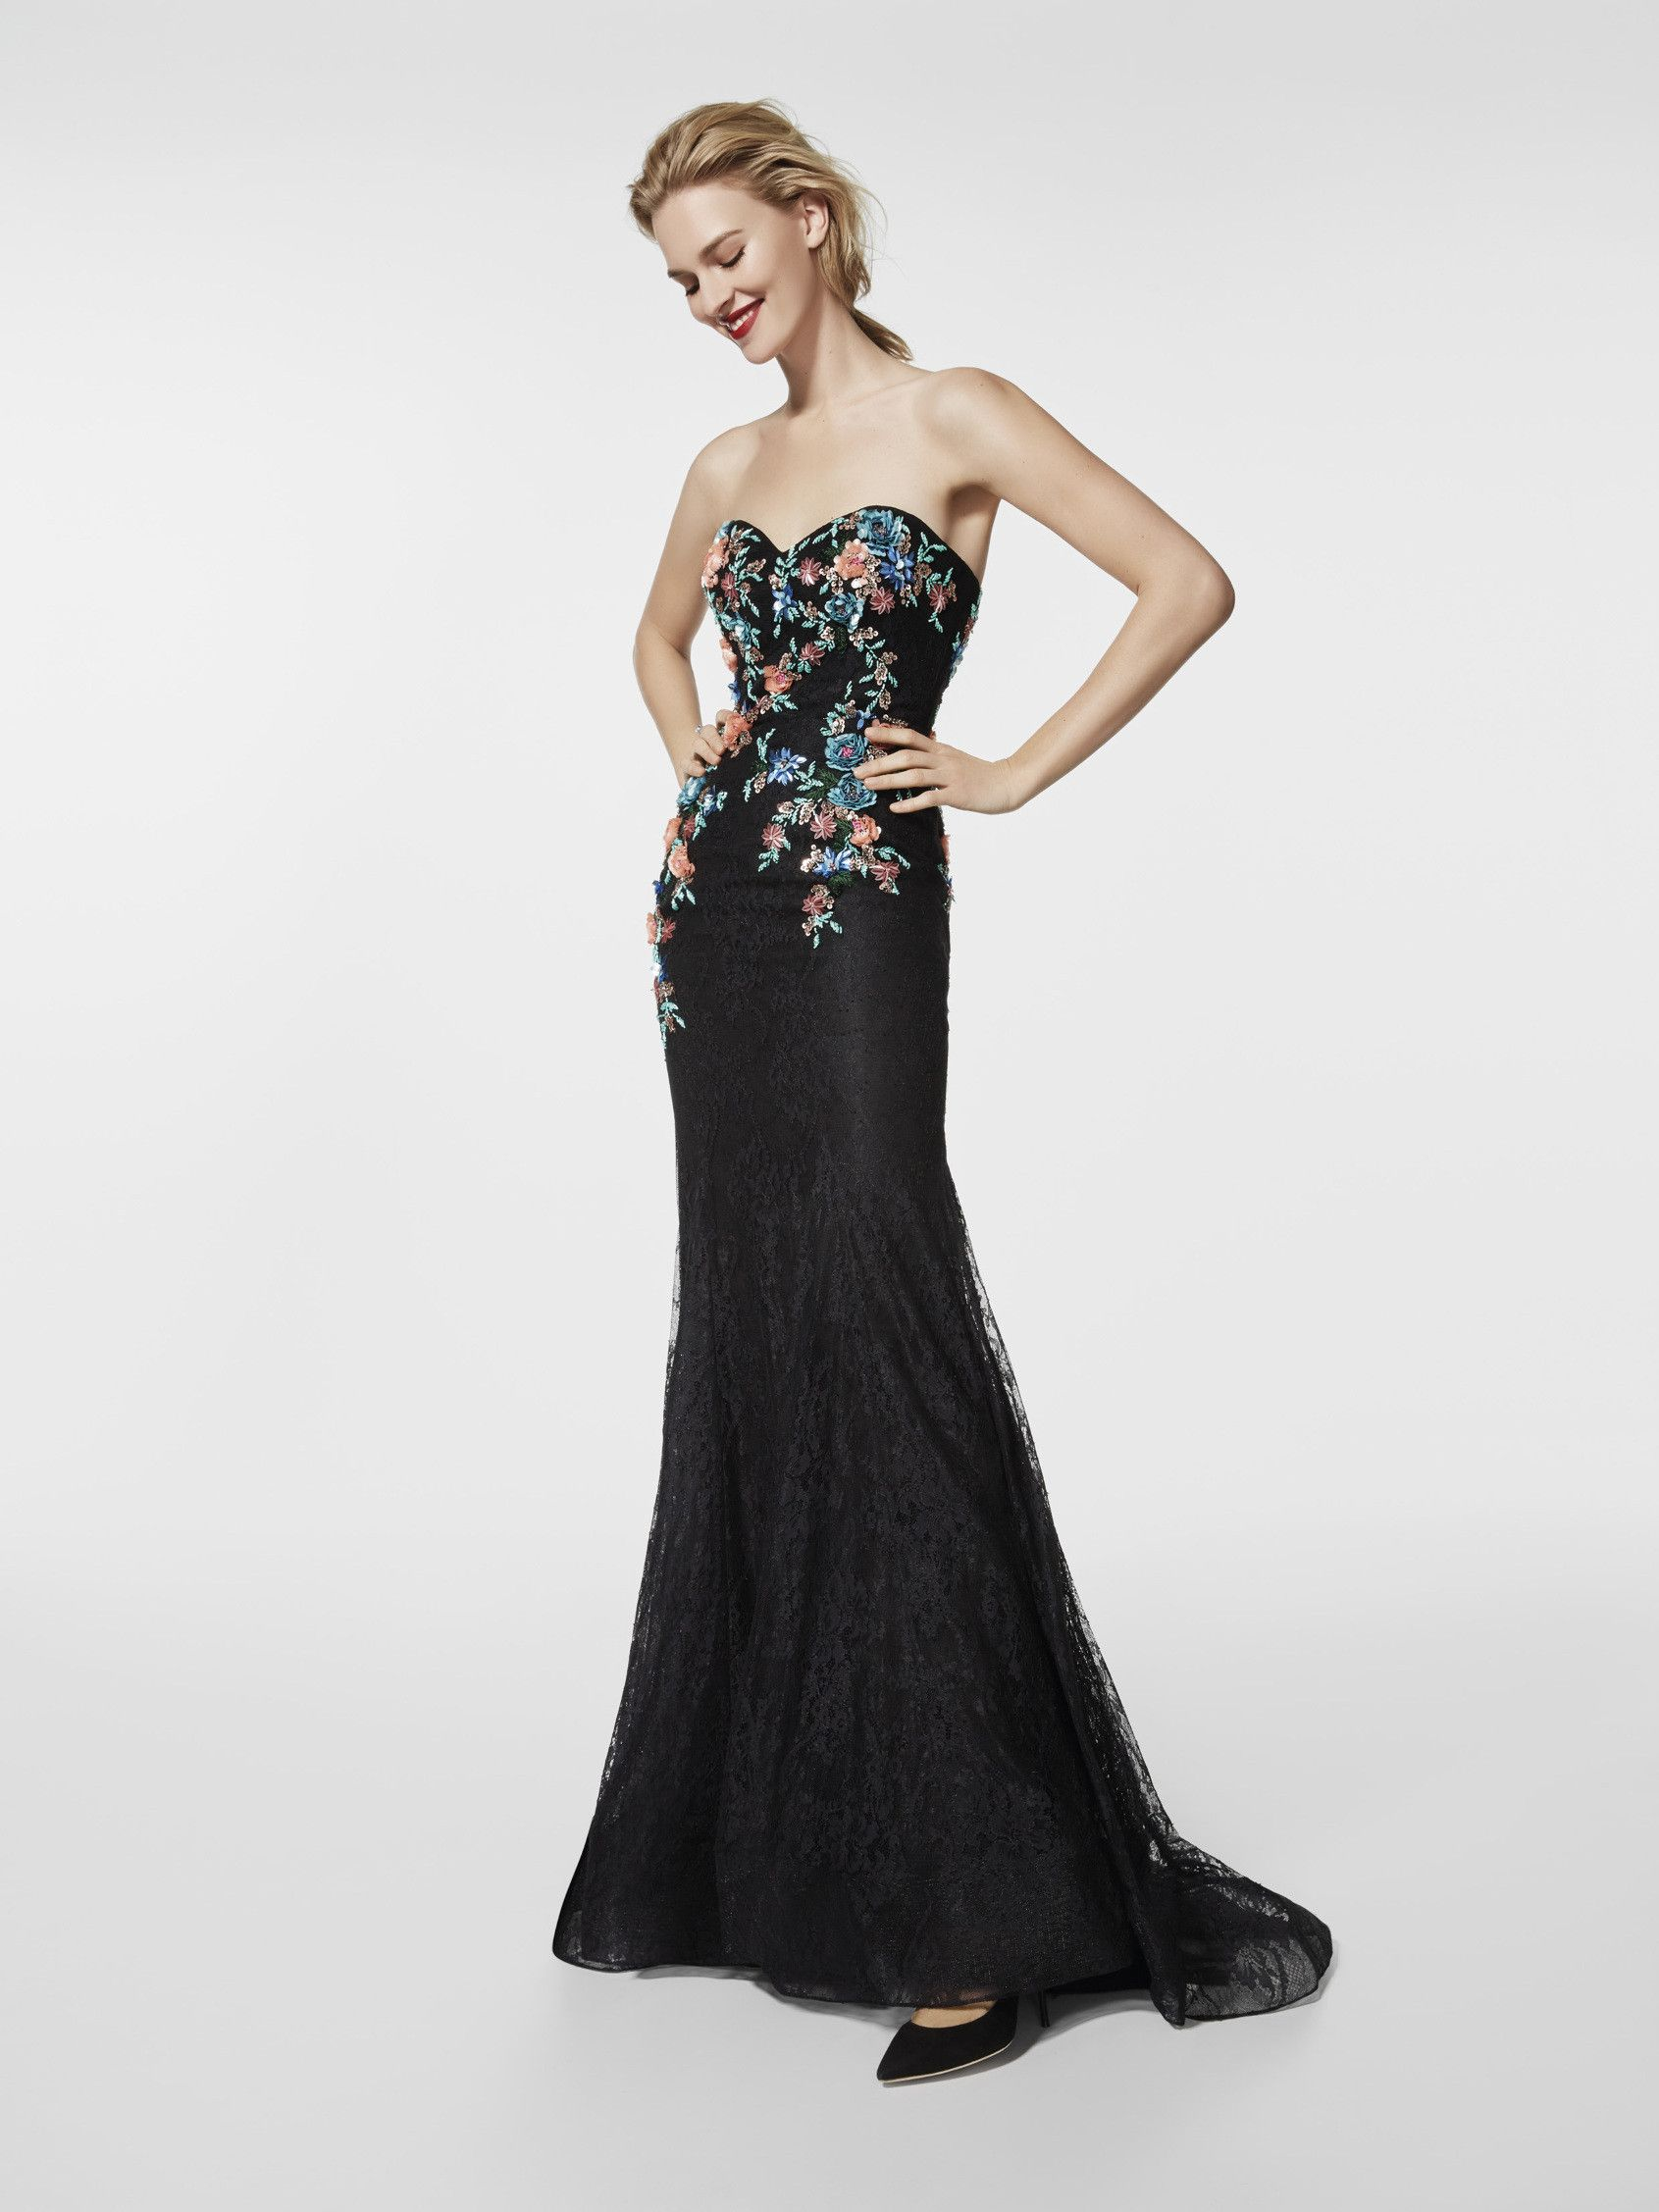 Black cocktail dress - Long dress GRASE - sleeveless | Pronovias ...